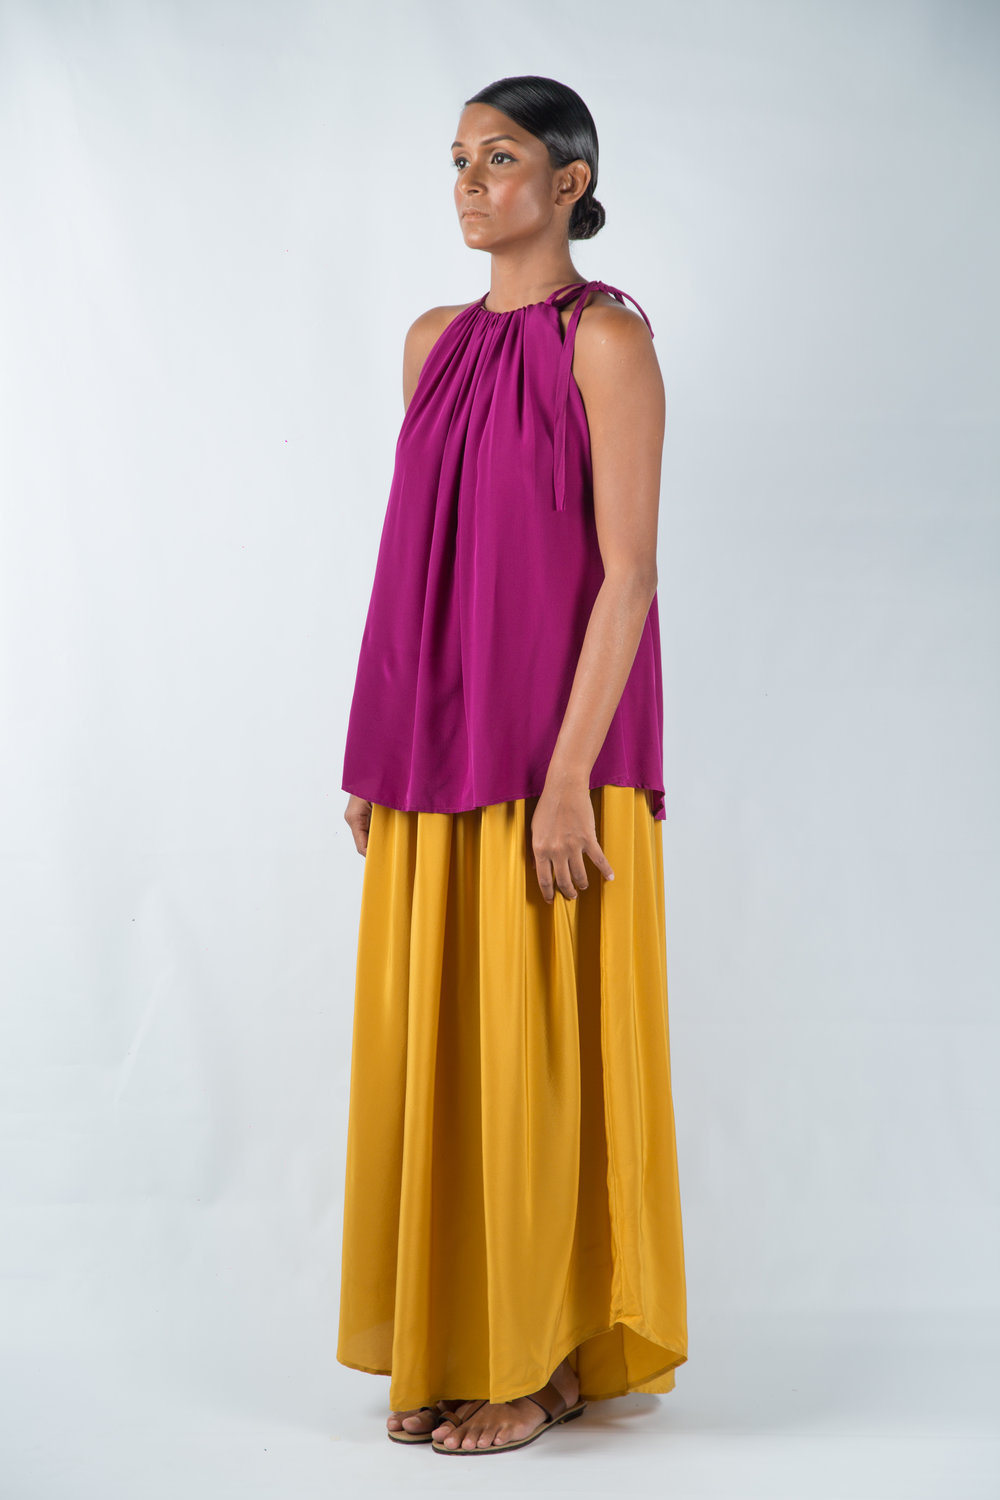 Asha layer dress - plum_saffron 3.jpg